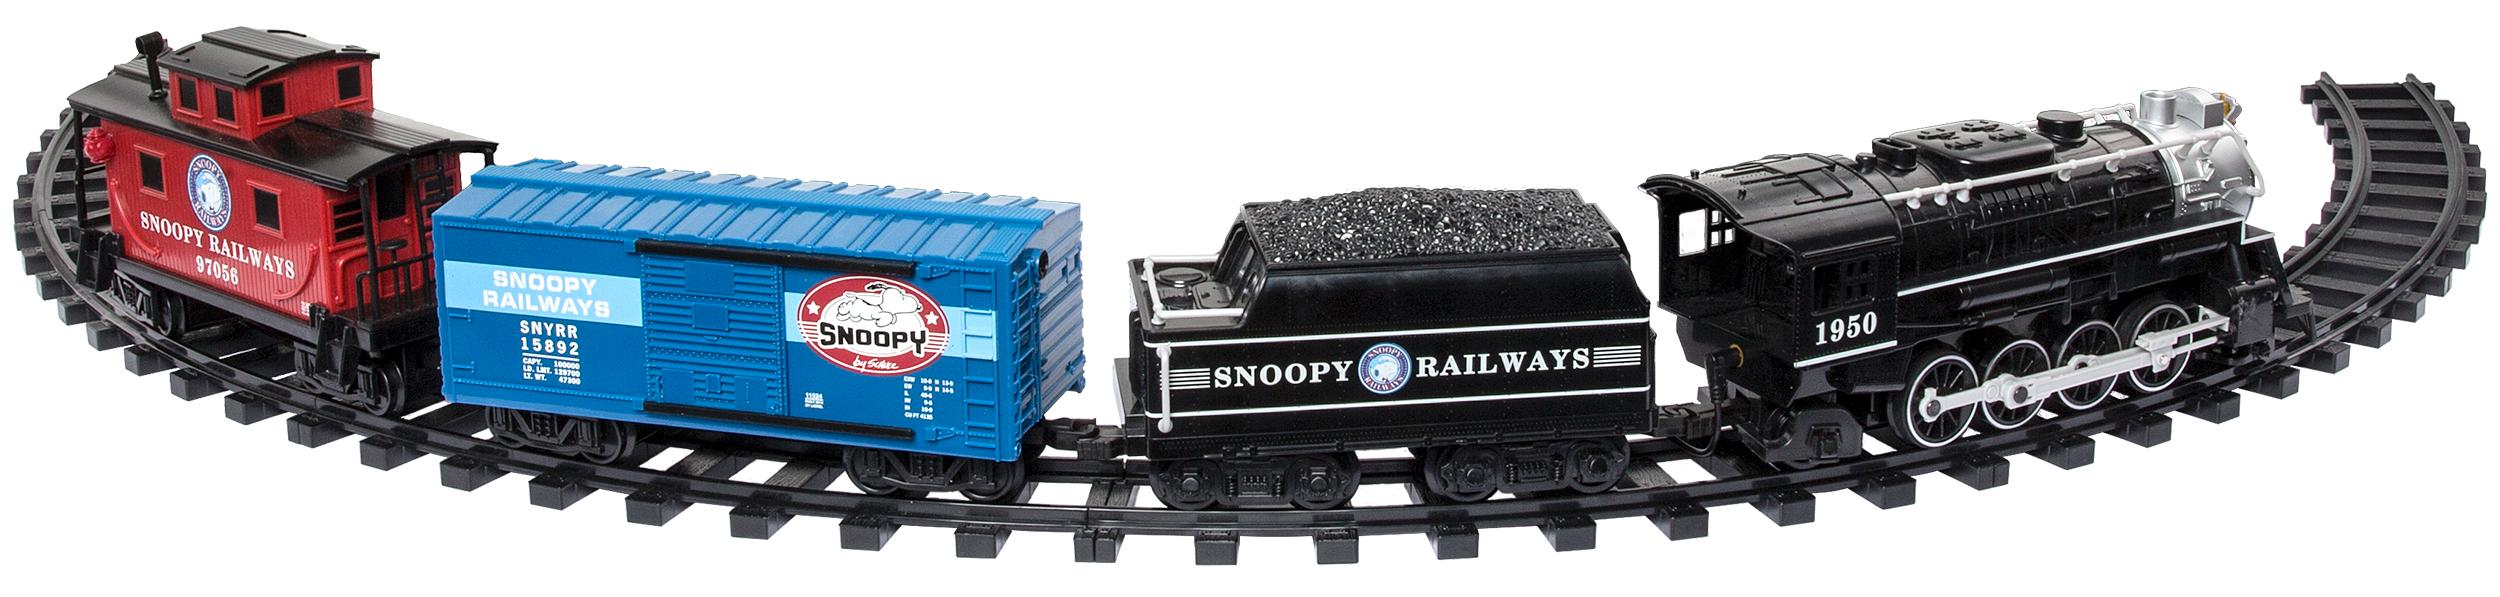 G-Scale Snoopy Railroad Battery Train Set